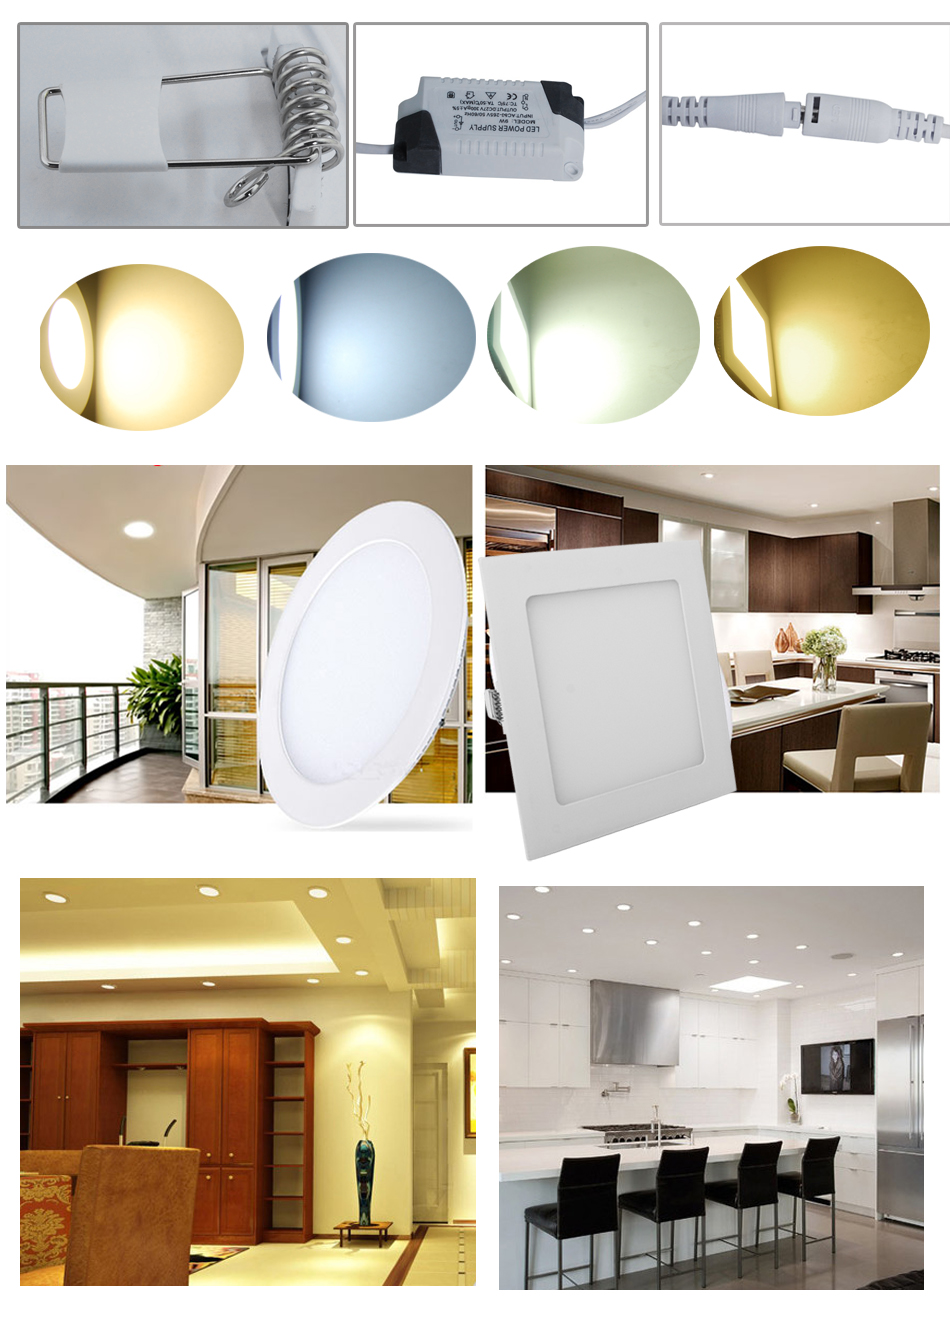 10pcs Led Recessed Ceiling Panel Light Fixture White Downlight Round Square Ebay